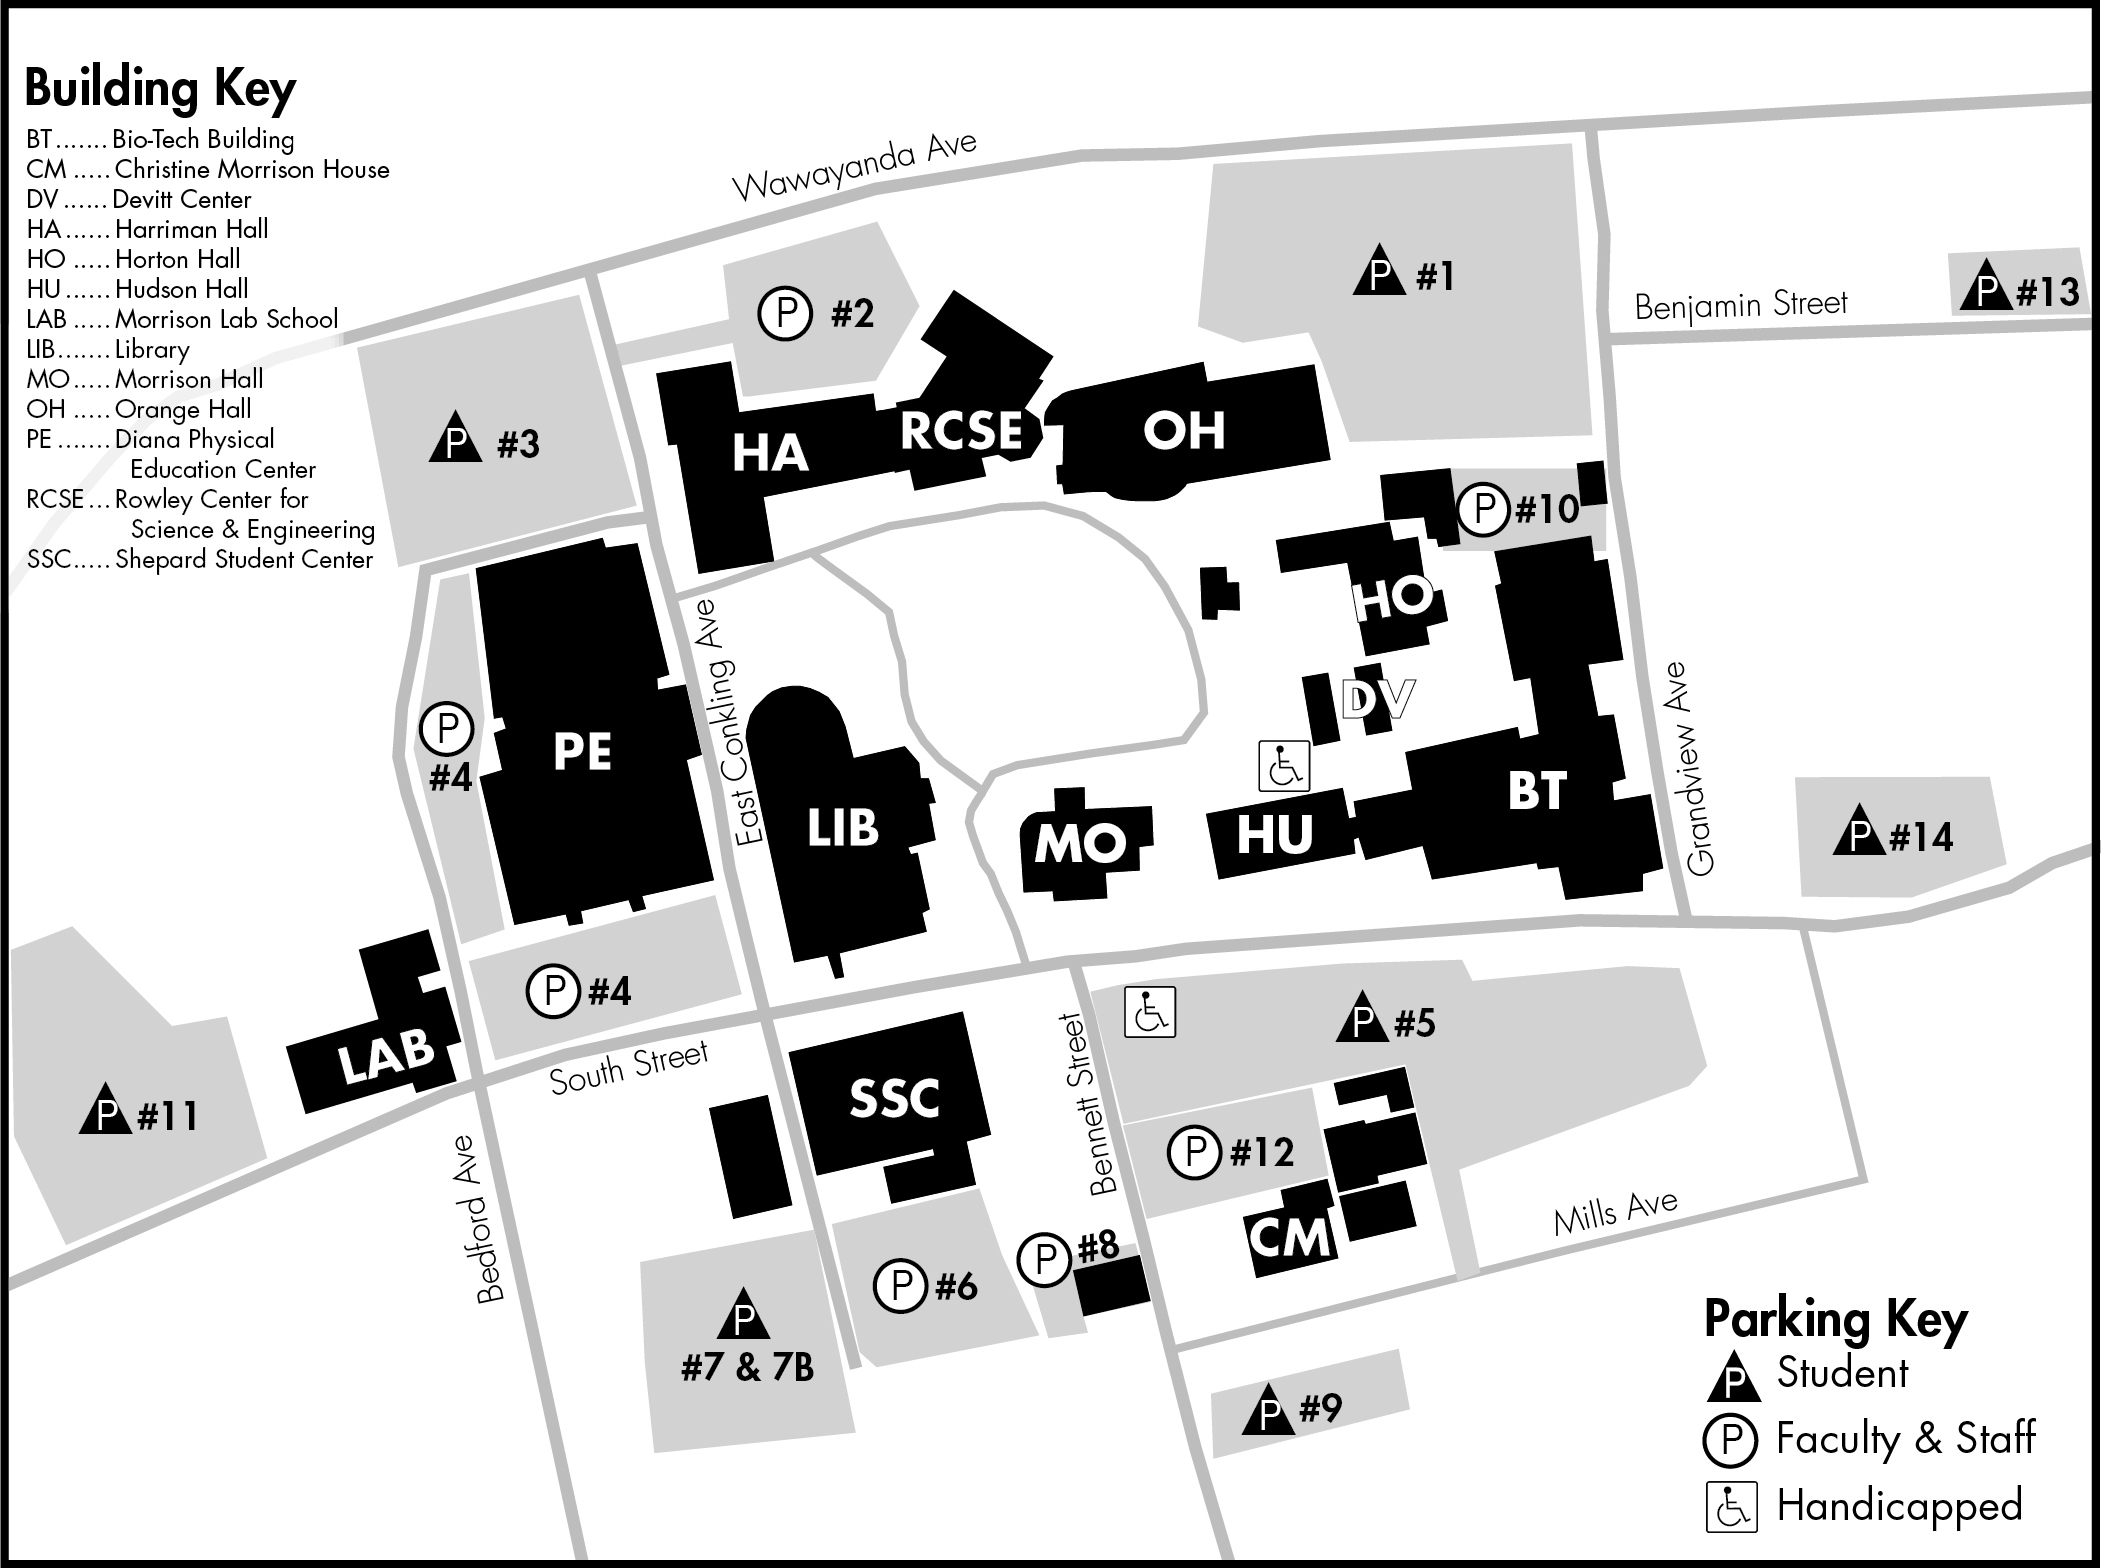 map of occc campus middletown ny | My blog Detailed Map Of Orange County Ny on detailed southern california county lines, map of westtown ny, detailed map of sussex county nj, map of sullivan county ny, detailed map of suffolk county ny, map of oswego county ny, detailed map of fairfield county ct, detailed map of westchester county, map of kings county ny, dutchess county ny, map of southold ny, map rosendale ny, town of rosendale ny, towns in rockland county ny, madison county ny, street map of goshen ny,